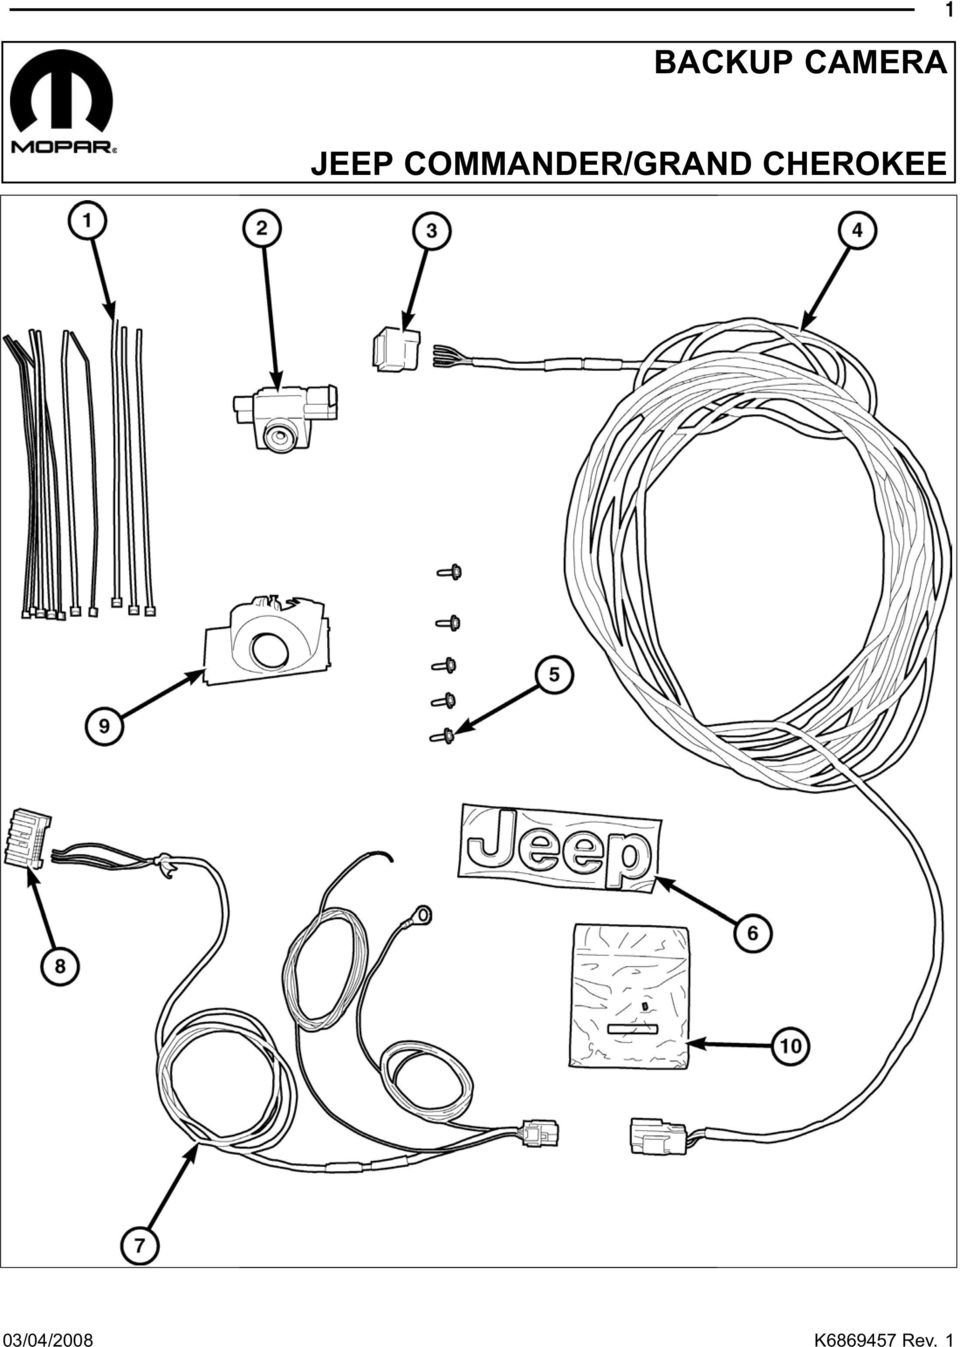 hight resolution of backup camera jeep commander grand cherokee pdf jeep commander thermostat jeep commander wiring harness grommet